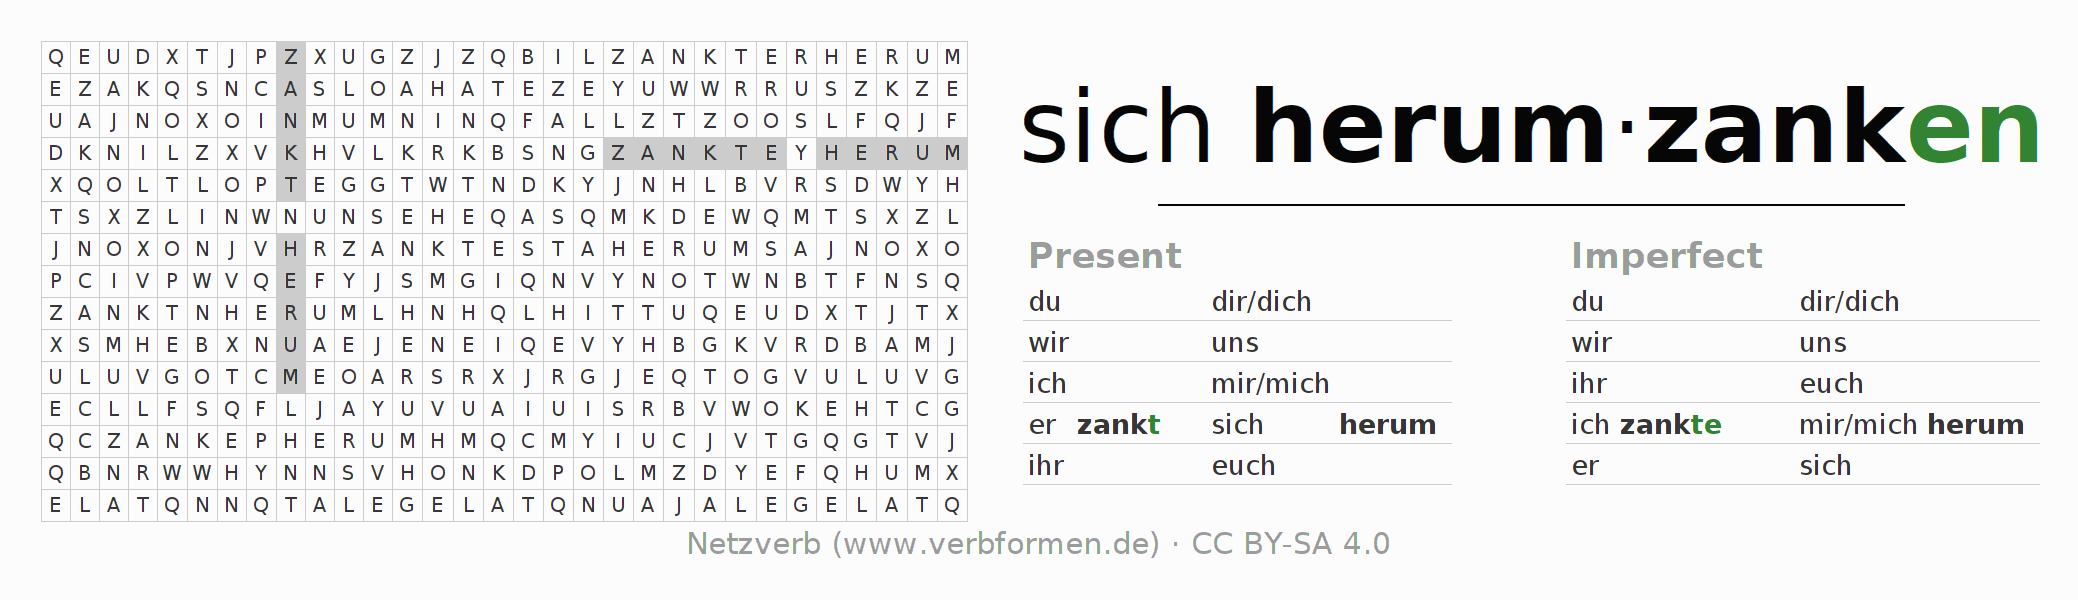 Word search puzzle for the conjugation of the verb sich herumzanken